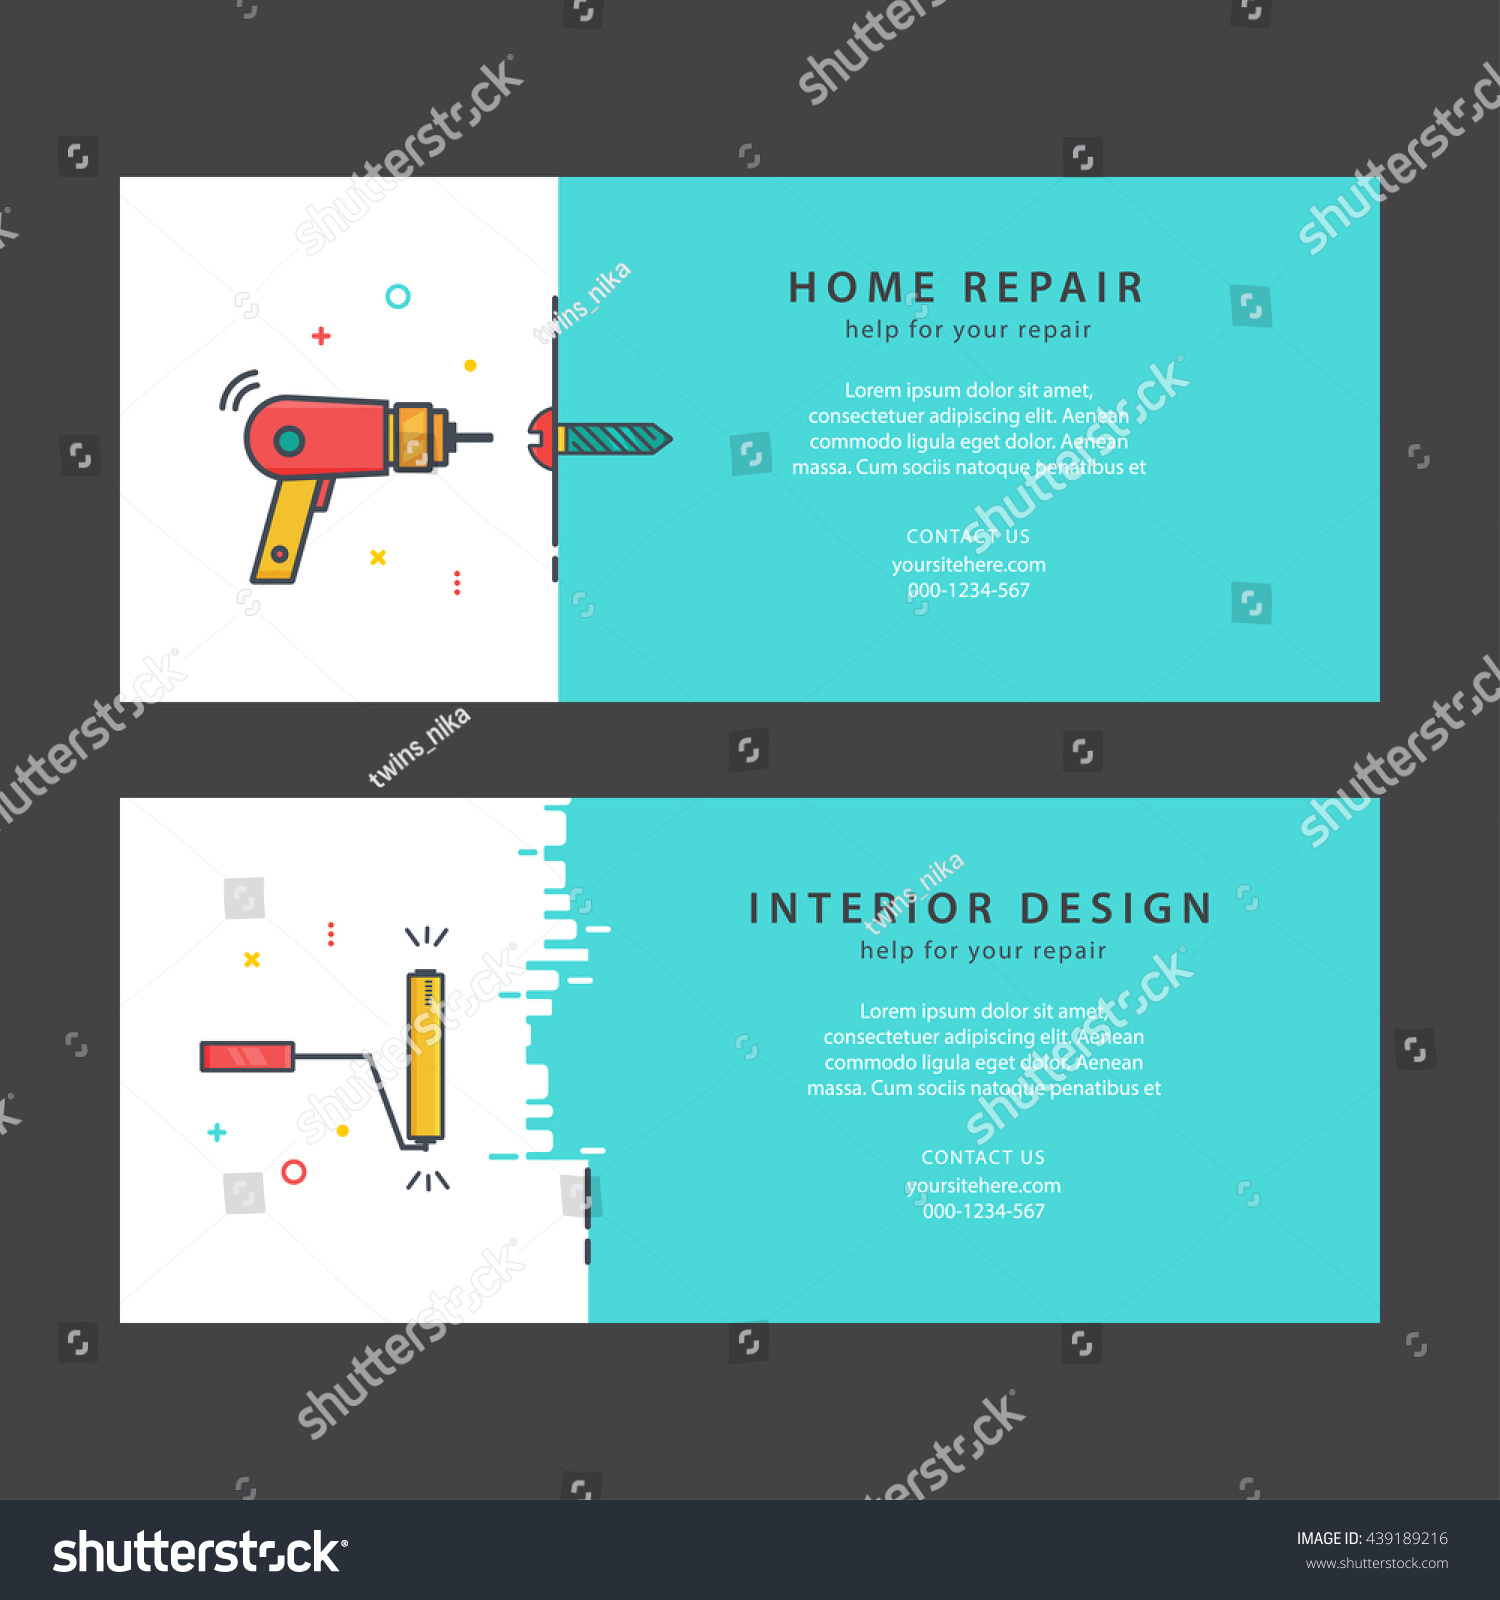 Home Repair Companies Vector Bright Flyers Home Repair Horizontal Stock Vector Royalty